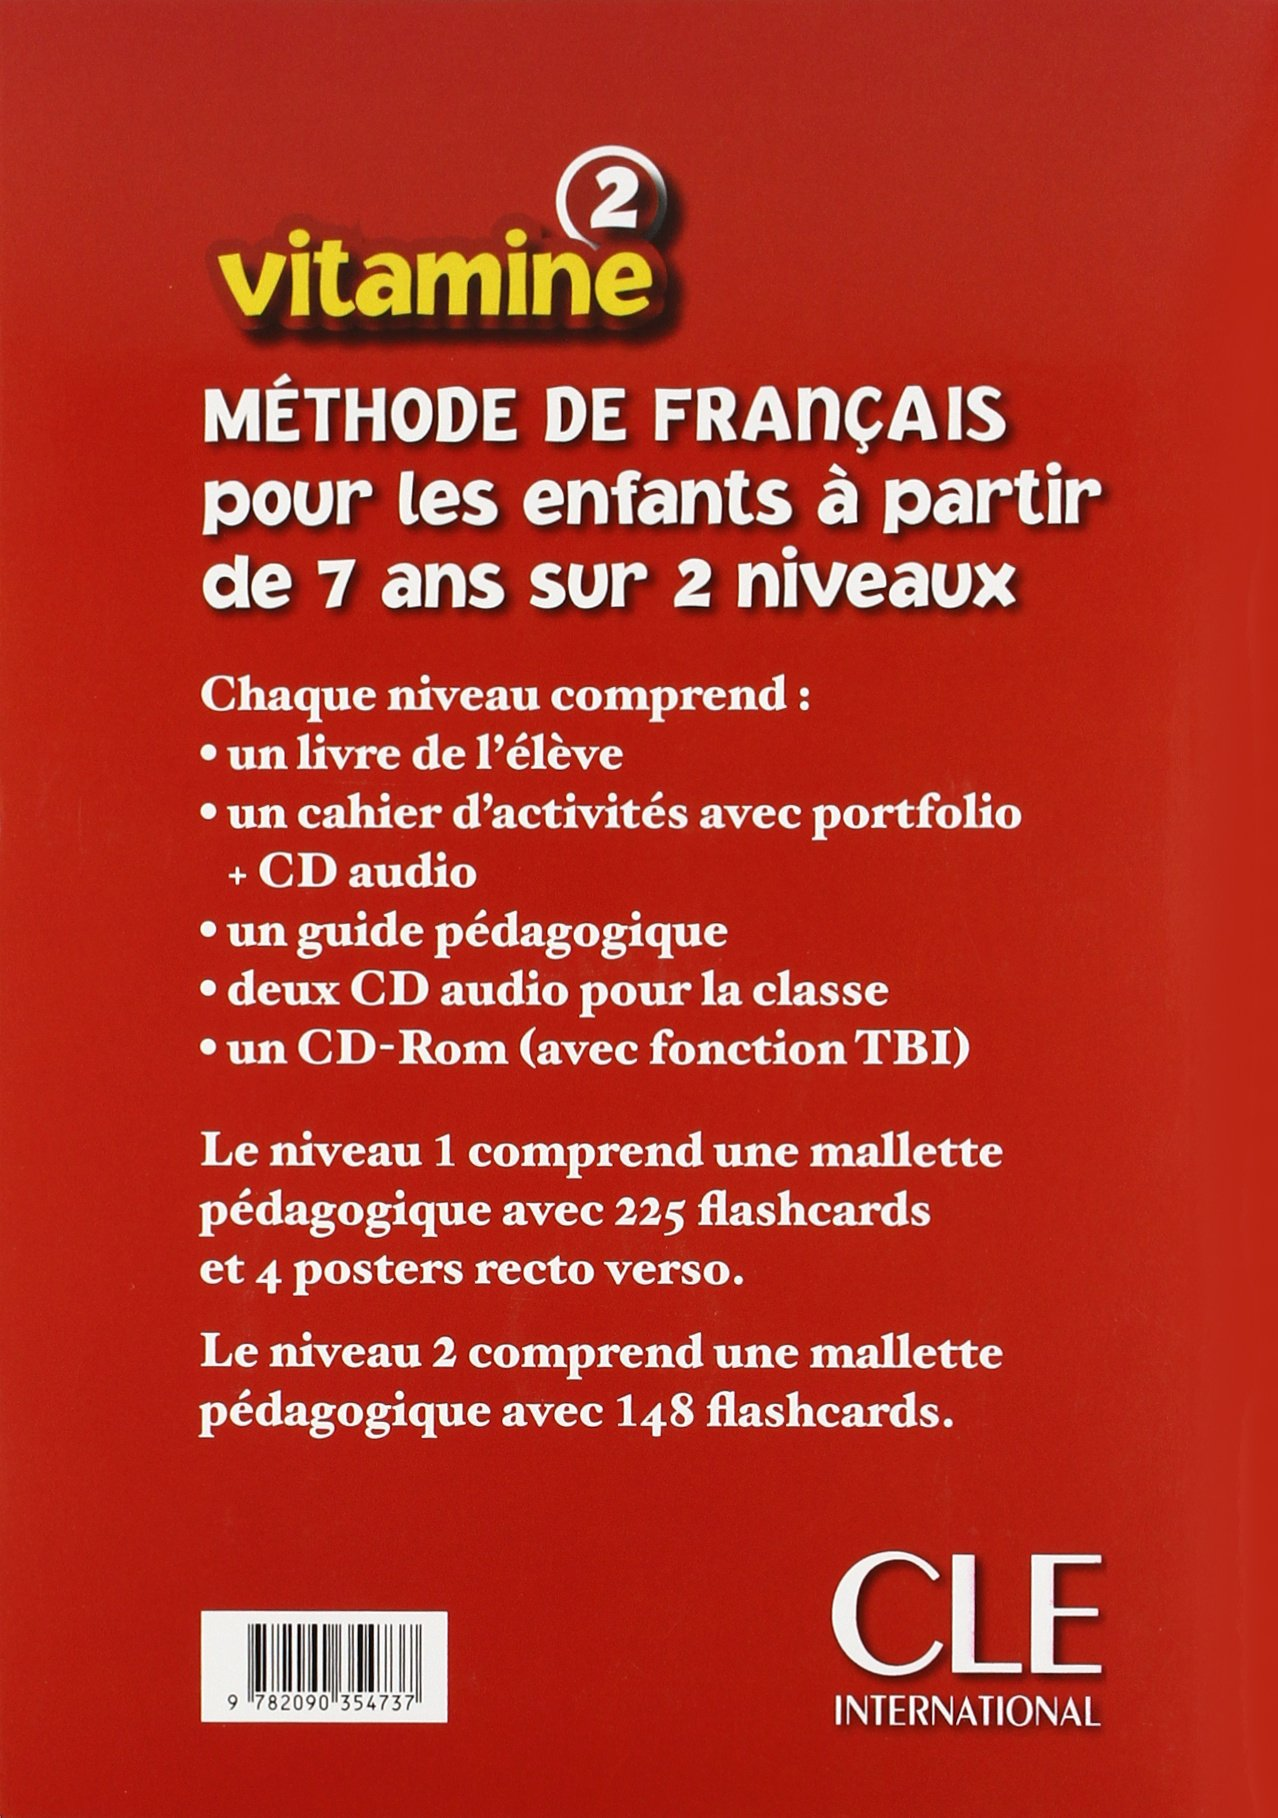 Vitamine Cahier d'Activites + CD Audio + Portfolio 2 (French Edition)